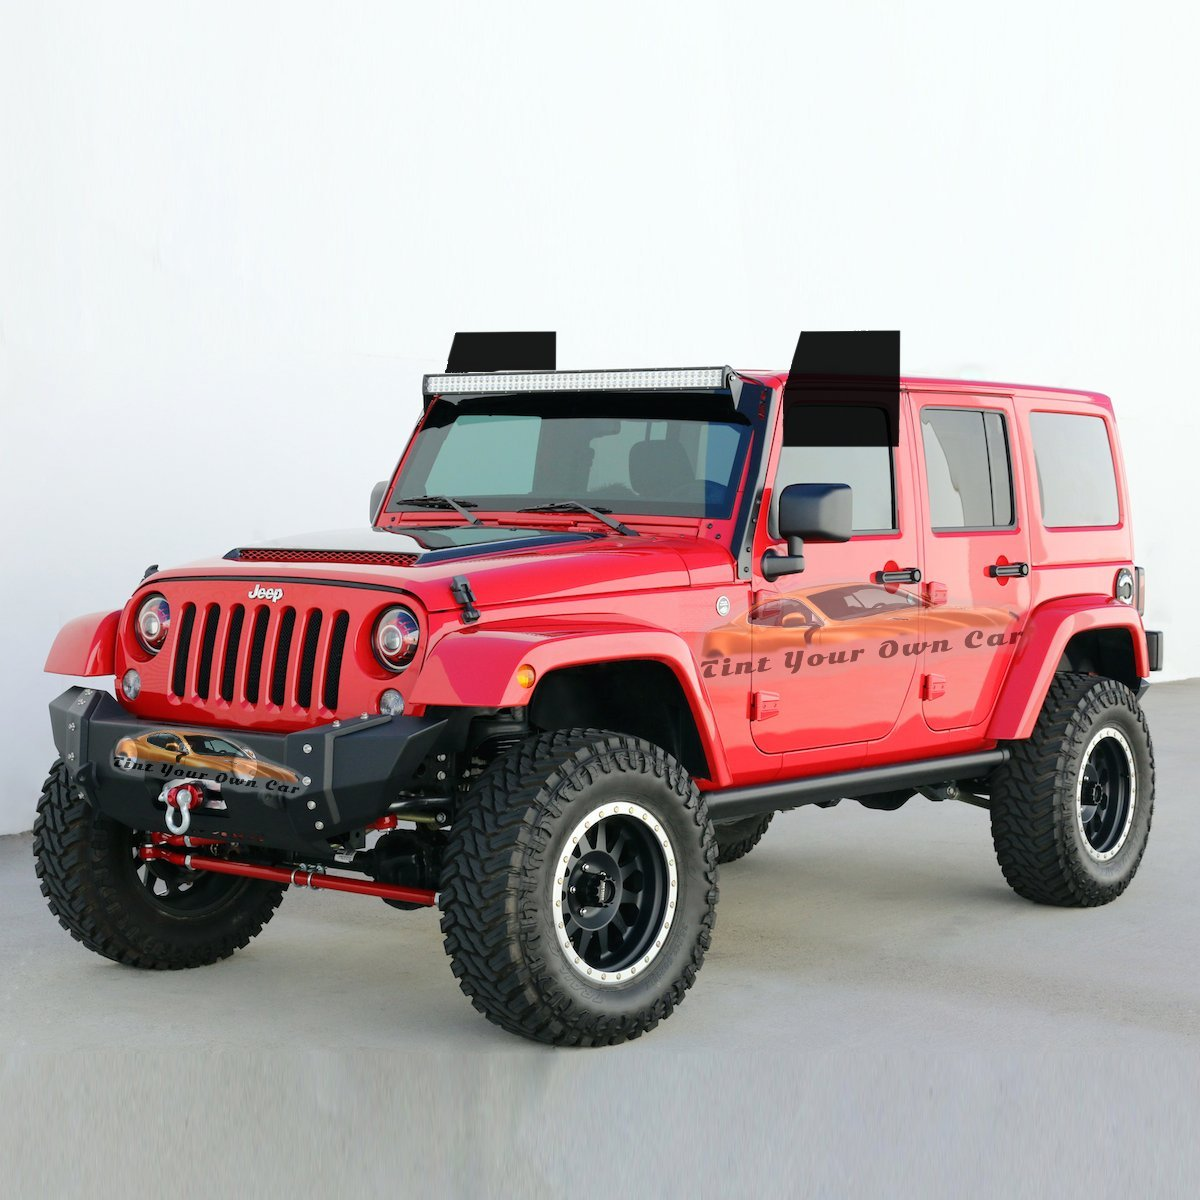 Computer Cut For 2011-2016 Jeep Wrangler Unlimited Front Windows, 20/% Tint Tint Kits